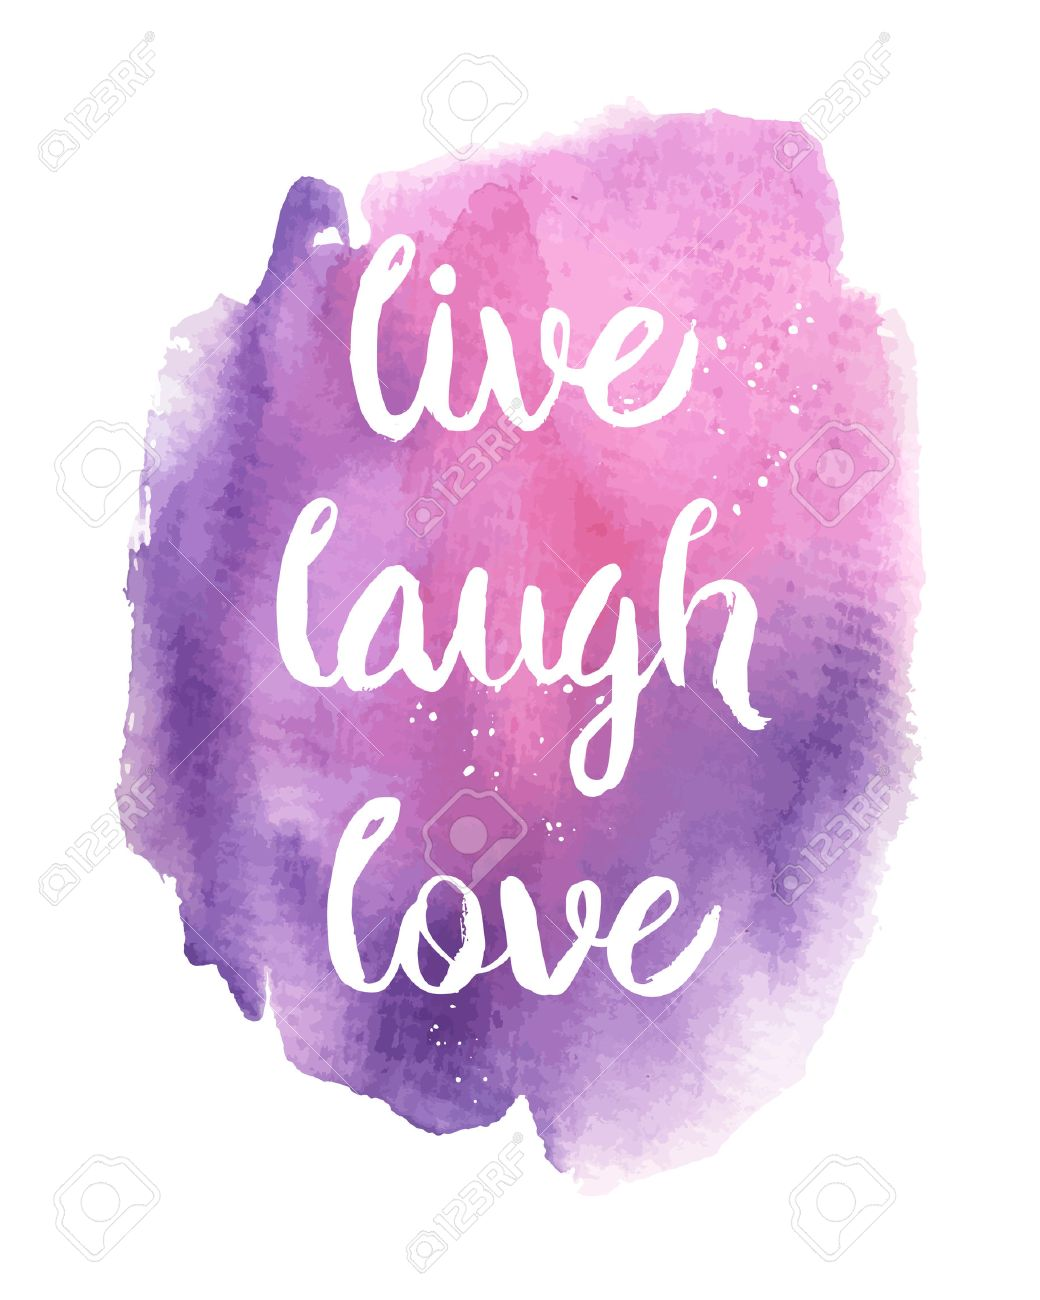 Live, Laugh, Love. Inspirational motivational quote. Vector ink..